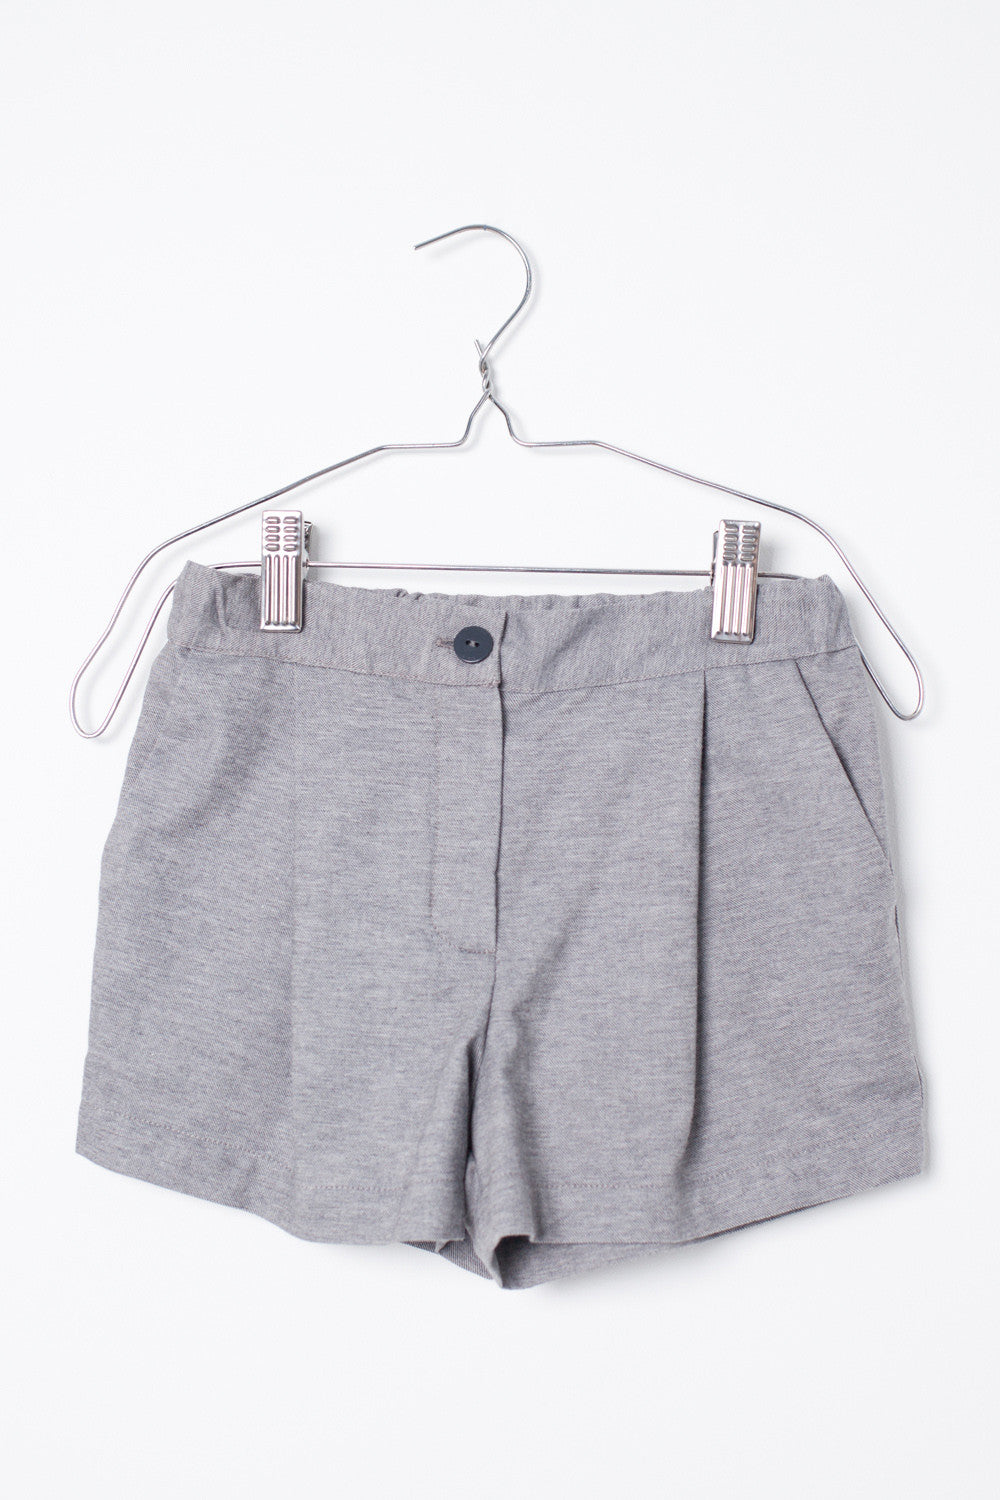 Motoreta Grey Peter Shorts - Ladida